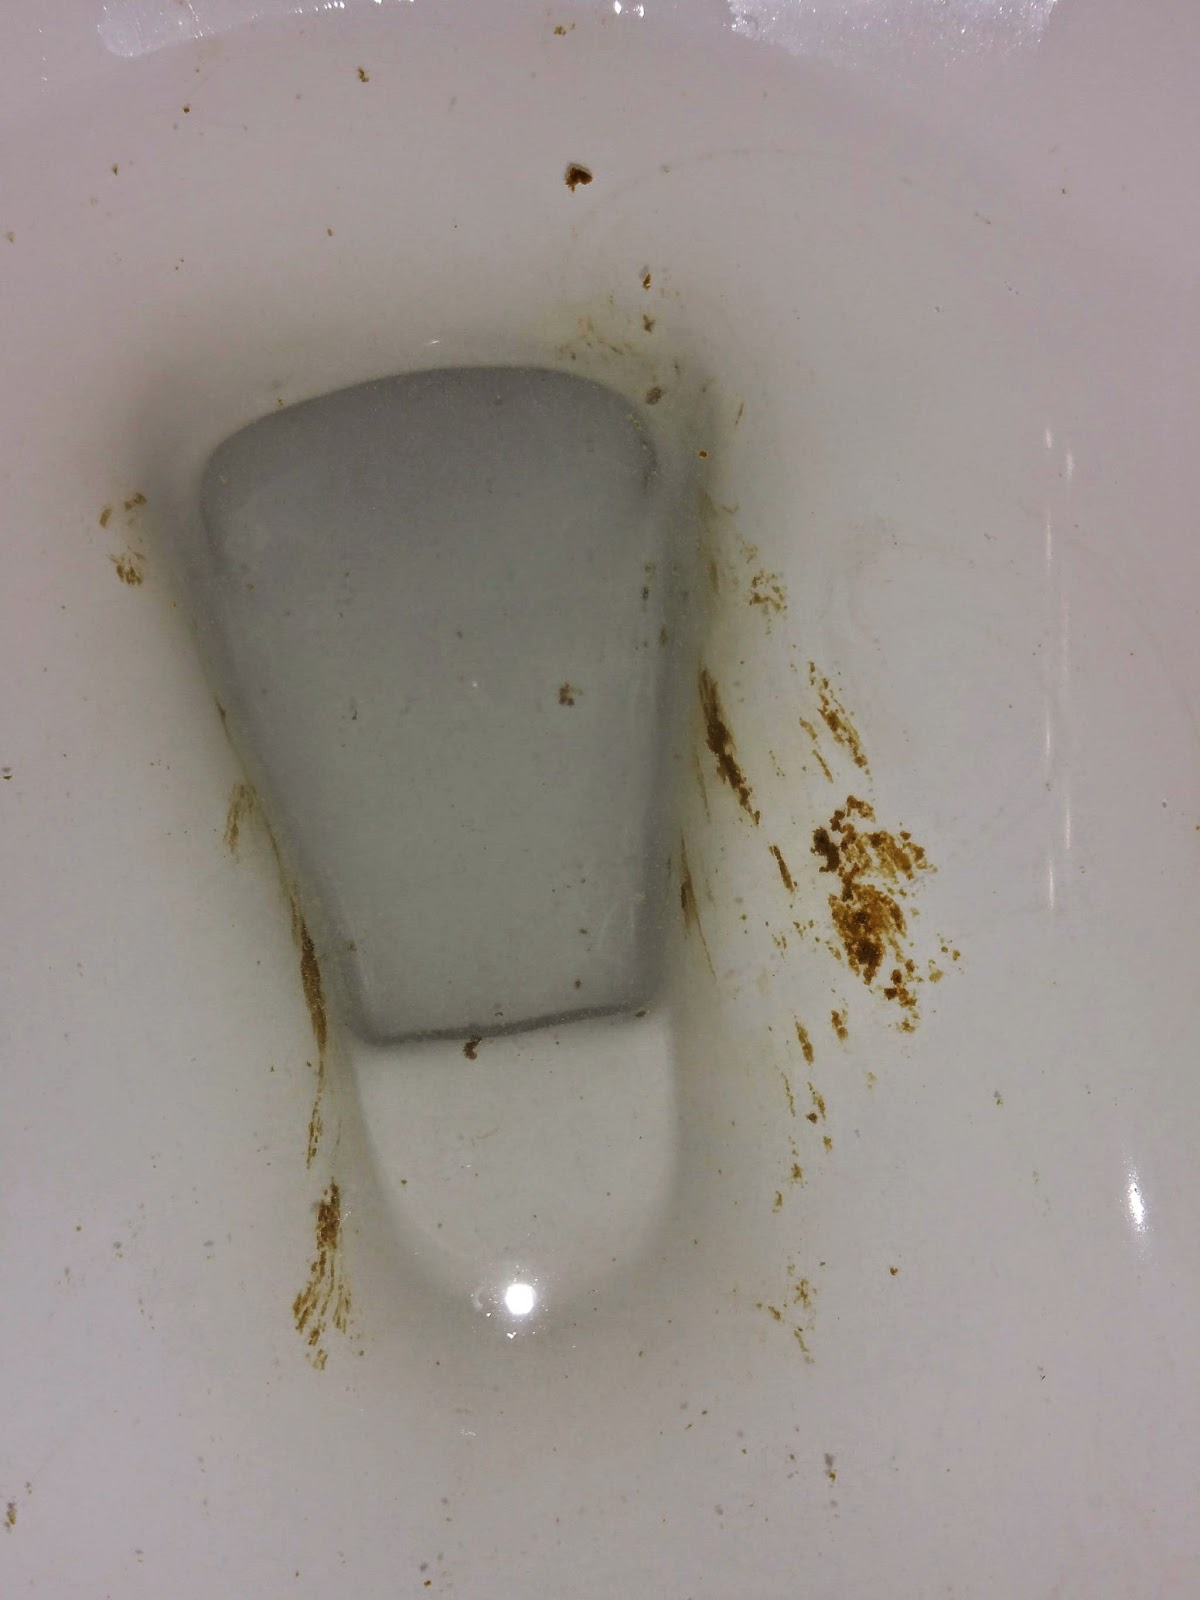 My Daily Poo February 2015